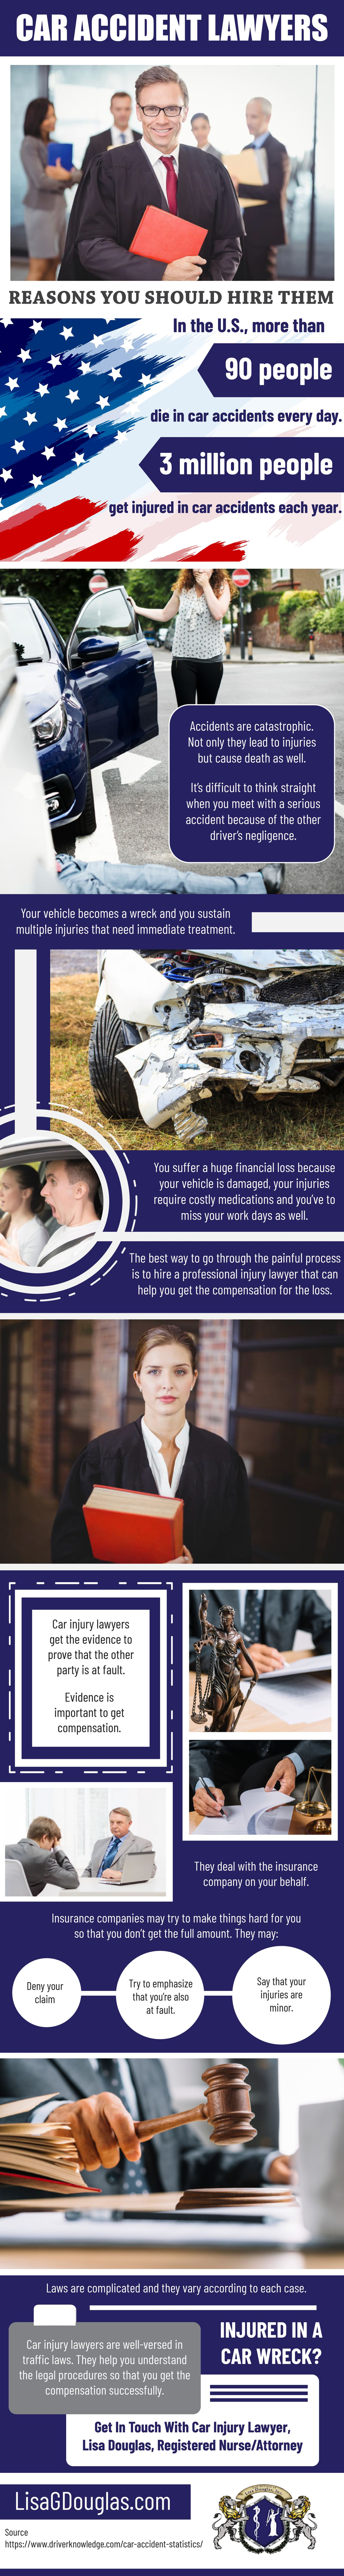 Car Accident Lawyers: Reasons You Should Hire Them